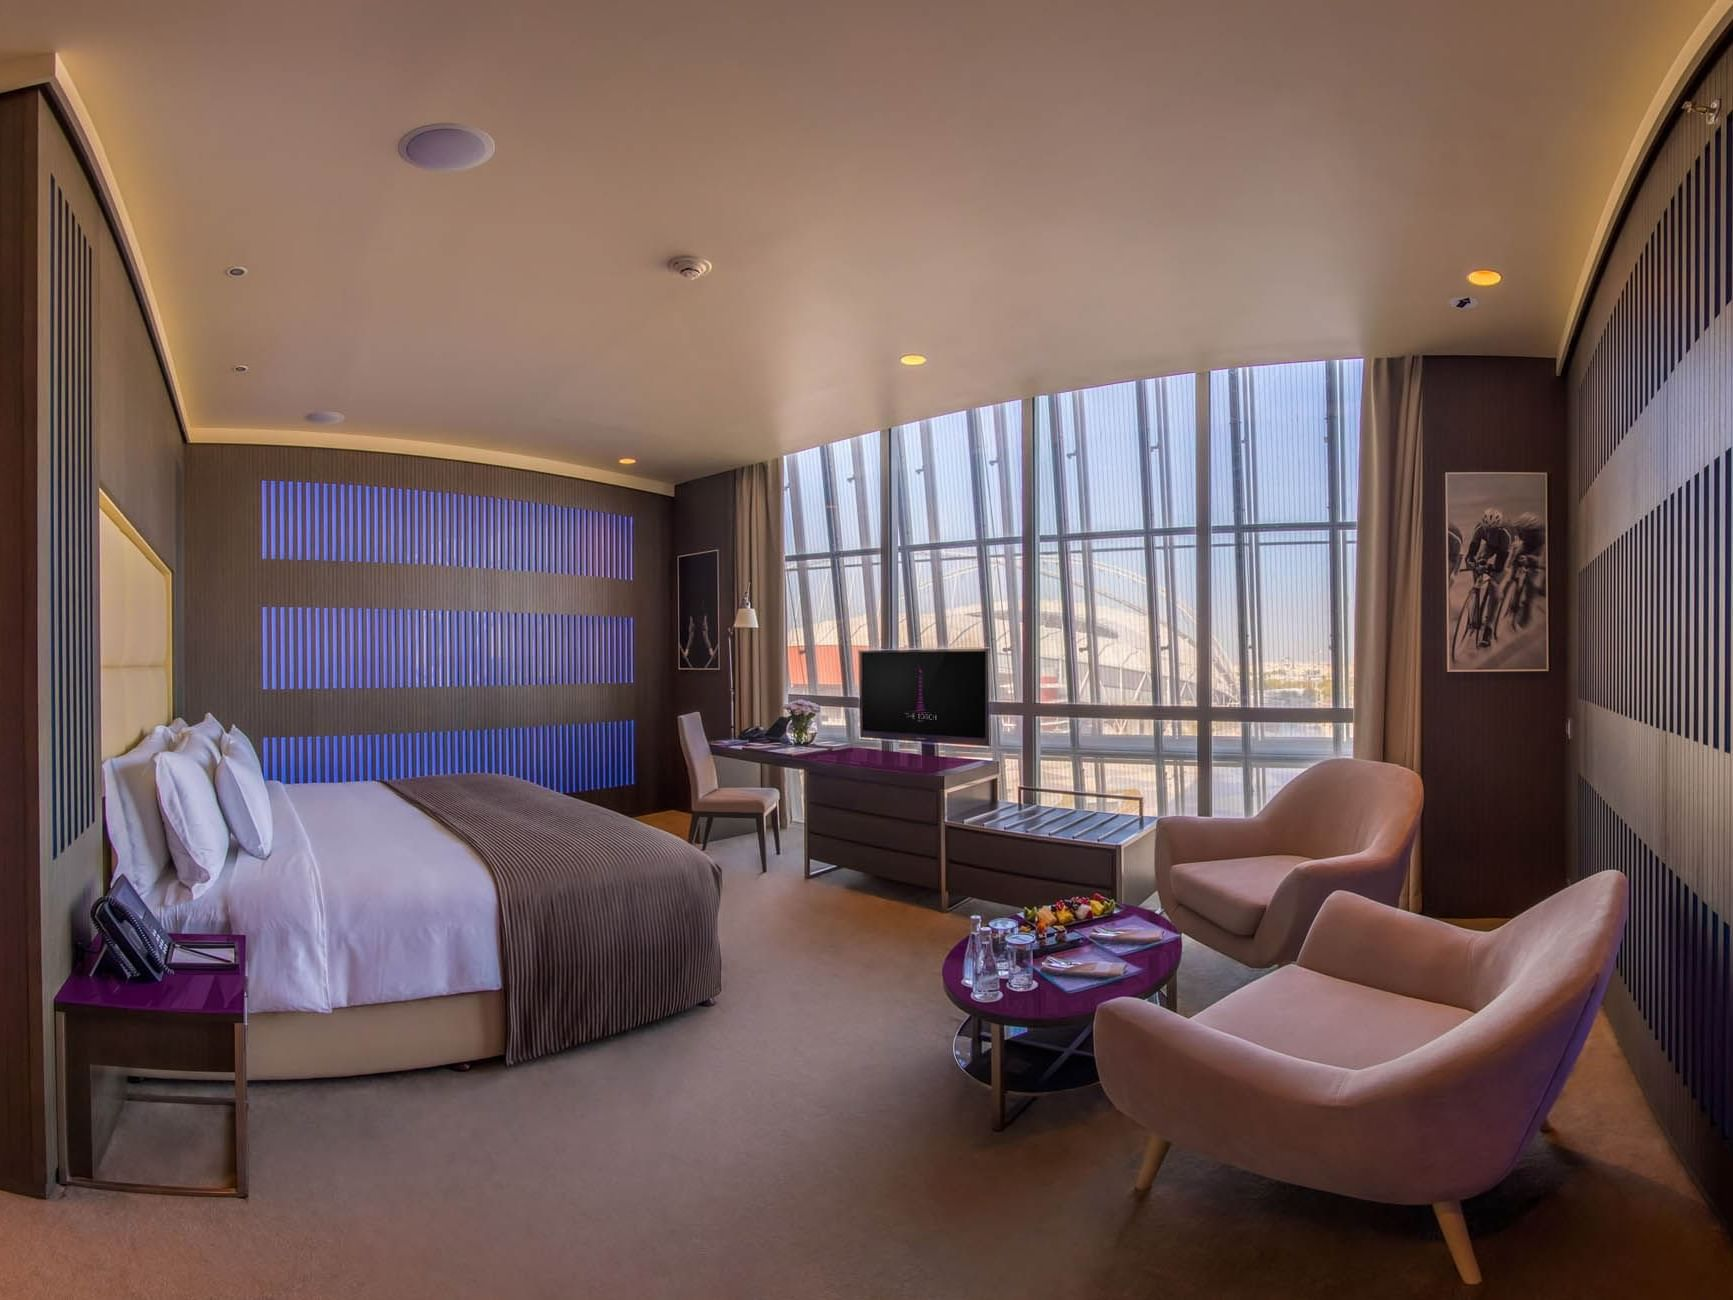 Deluxe Room at The Torch Doha Hotel in Qatar